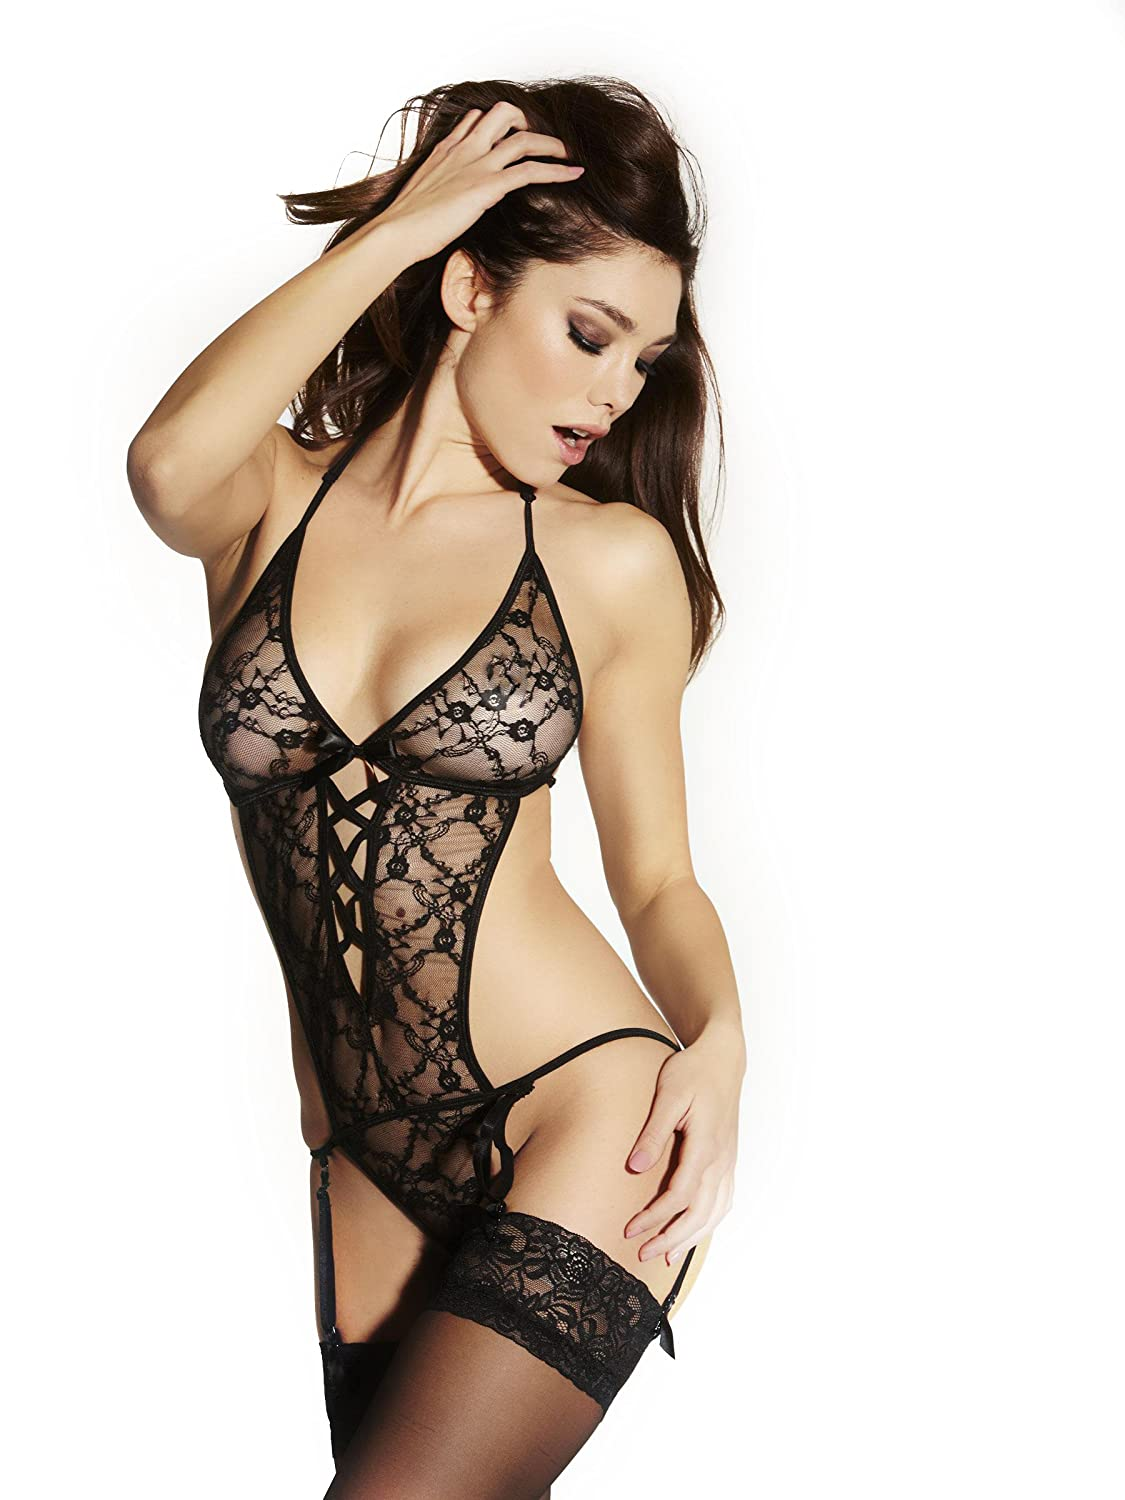 d60784ebb Ann Summers Womens Marnie Black Lace Crotchless Body Sexy Lingerie Underwear  S  Amazon.co.uk  Health   Personal Care